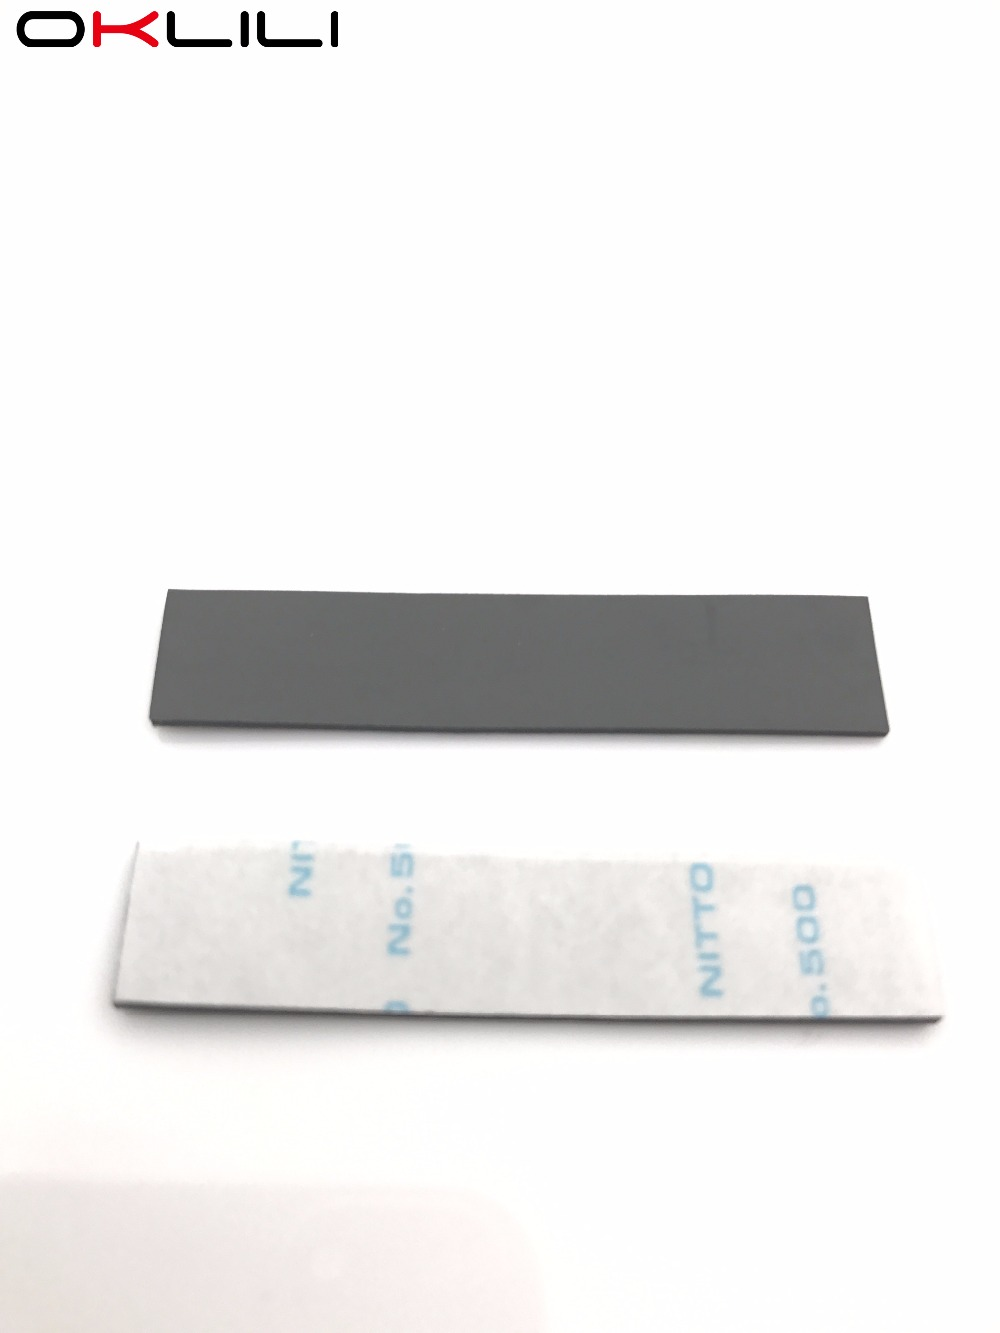 20PC Separation Pad Rubber Friction for Xerox Phaser 3420 3425 3450 3500 3150 3130 3120 3119 3115 3121 M15 3200 3300 PE120 PE220 black refill toner for xerox 3110 3115 3116 3117 3119 more 100g